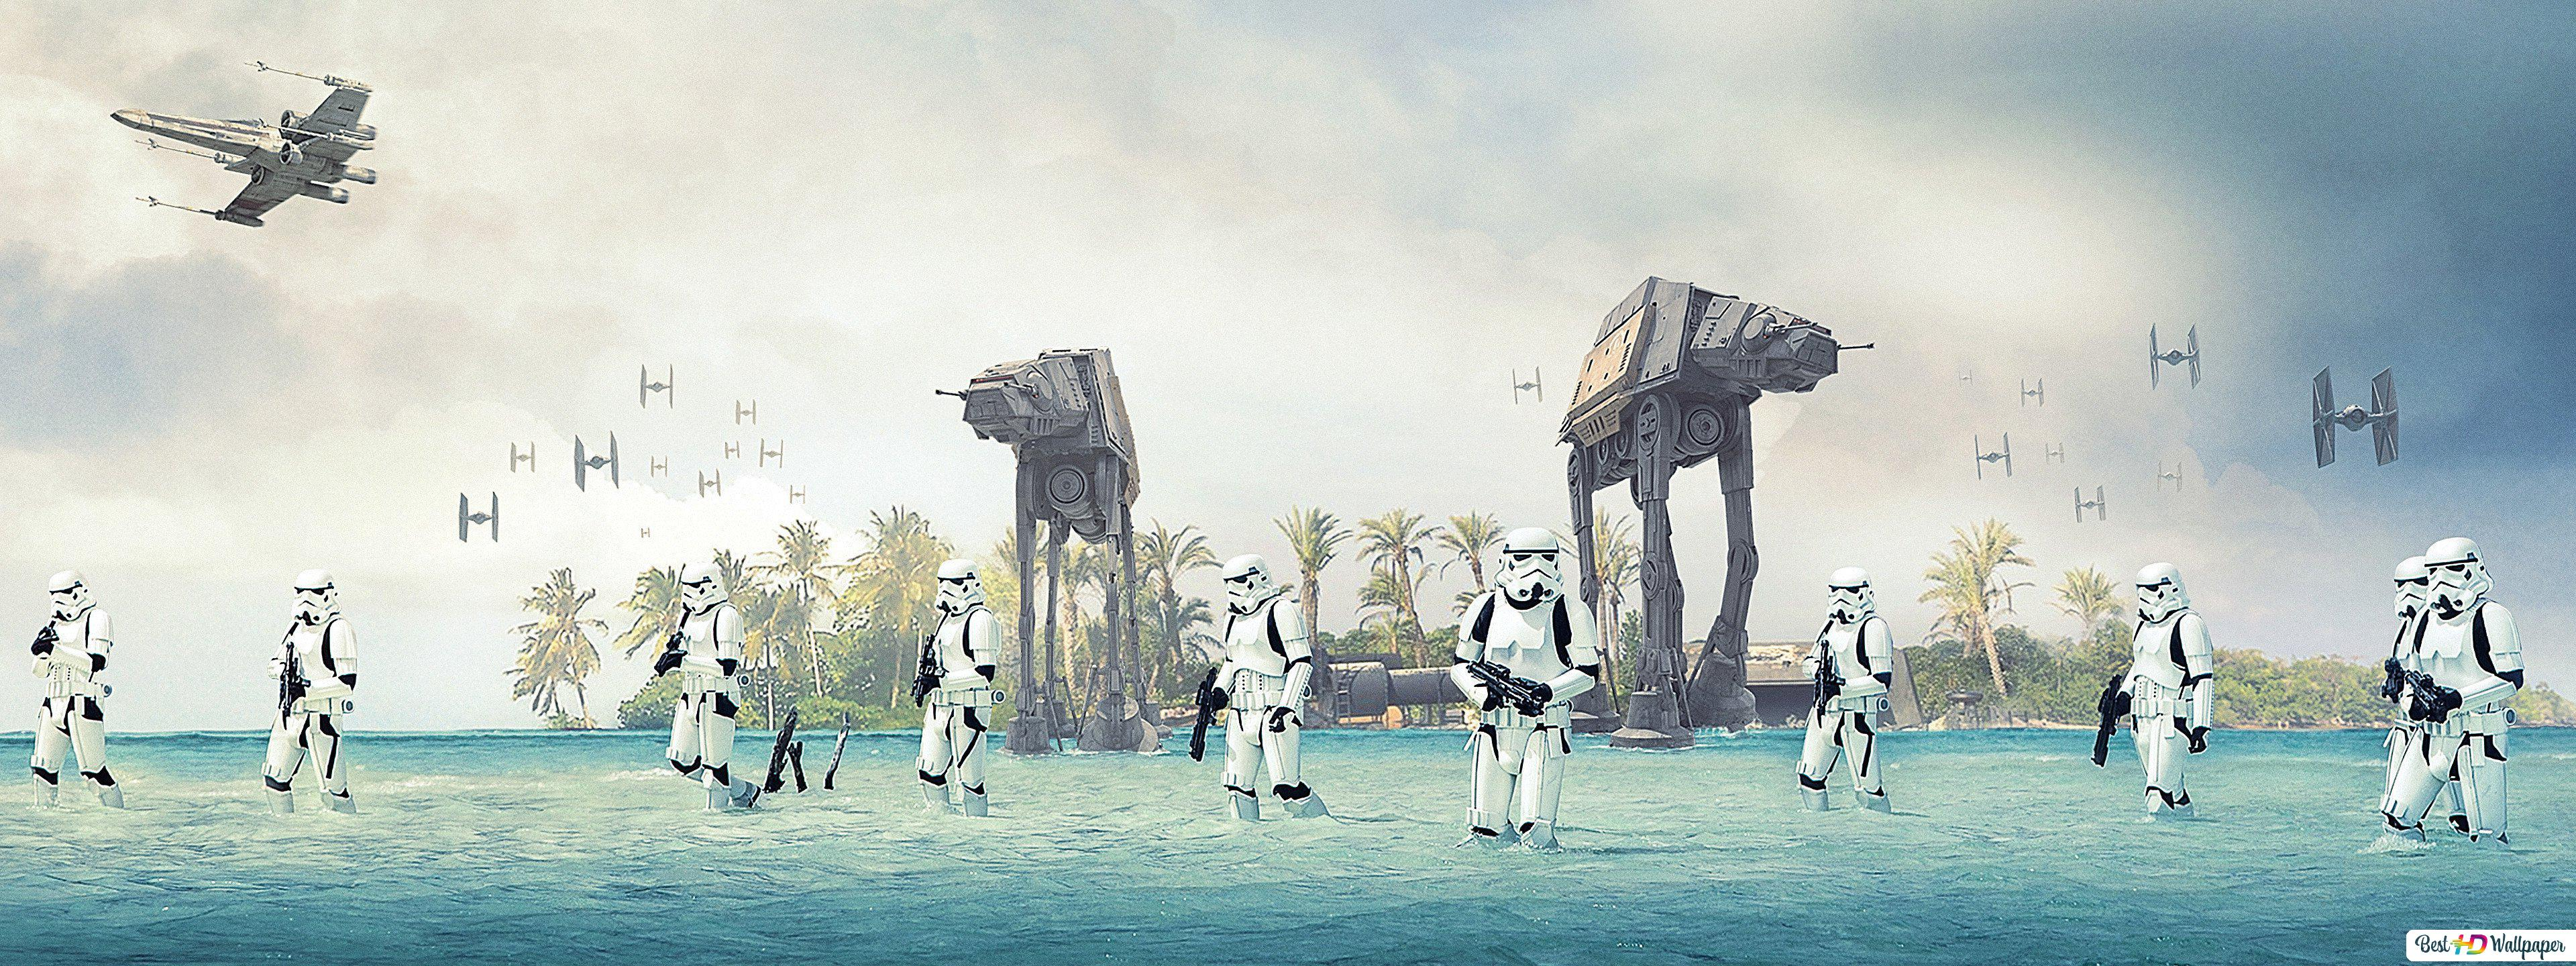 Stormtrooper With At At Walker Of Star Wars Hd Wallpaper Download